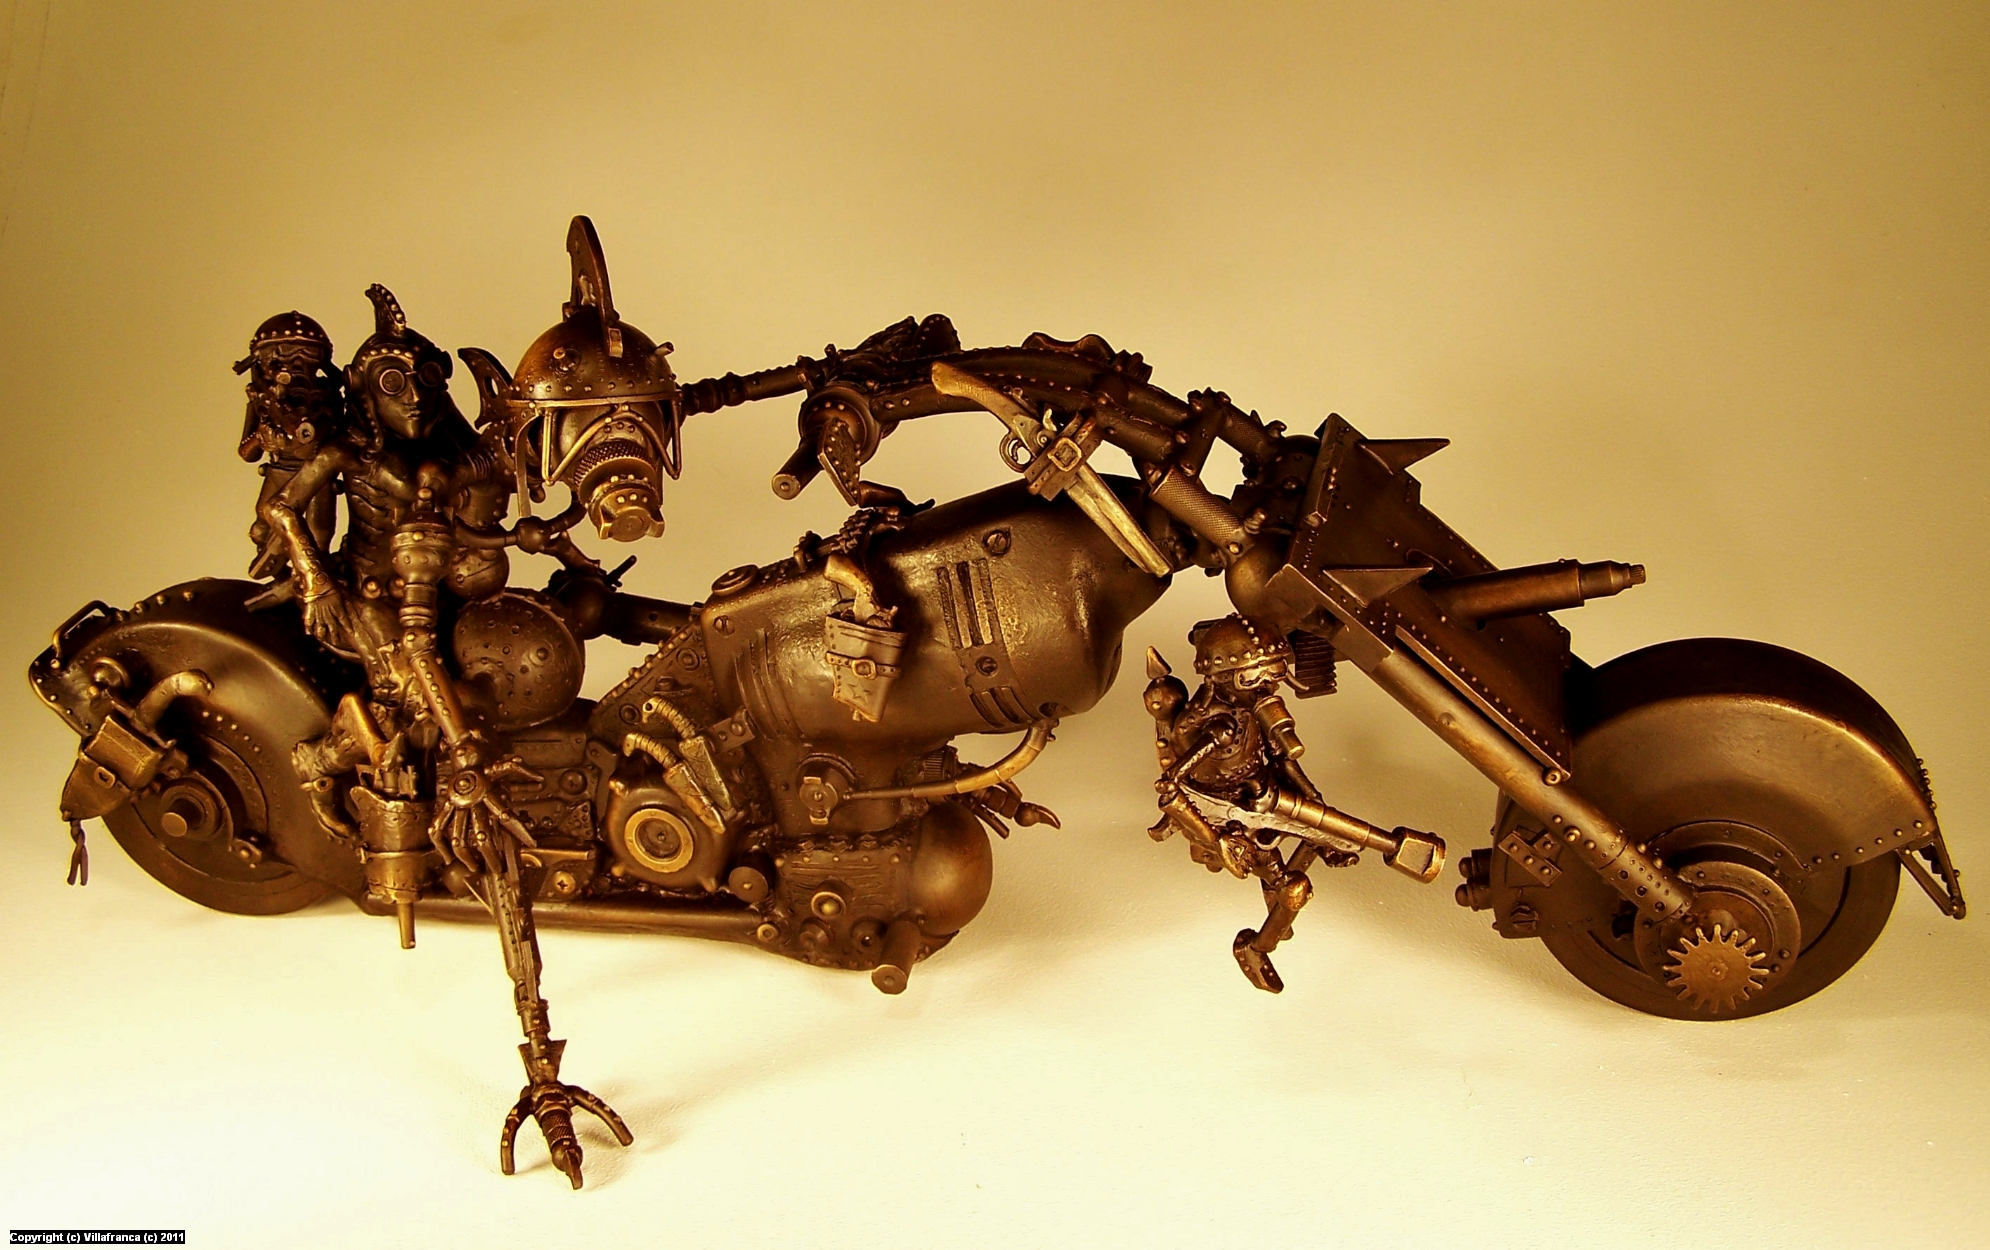 Robo-Bike  Artwork by Vincent Villafranca